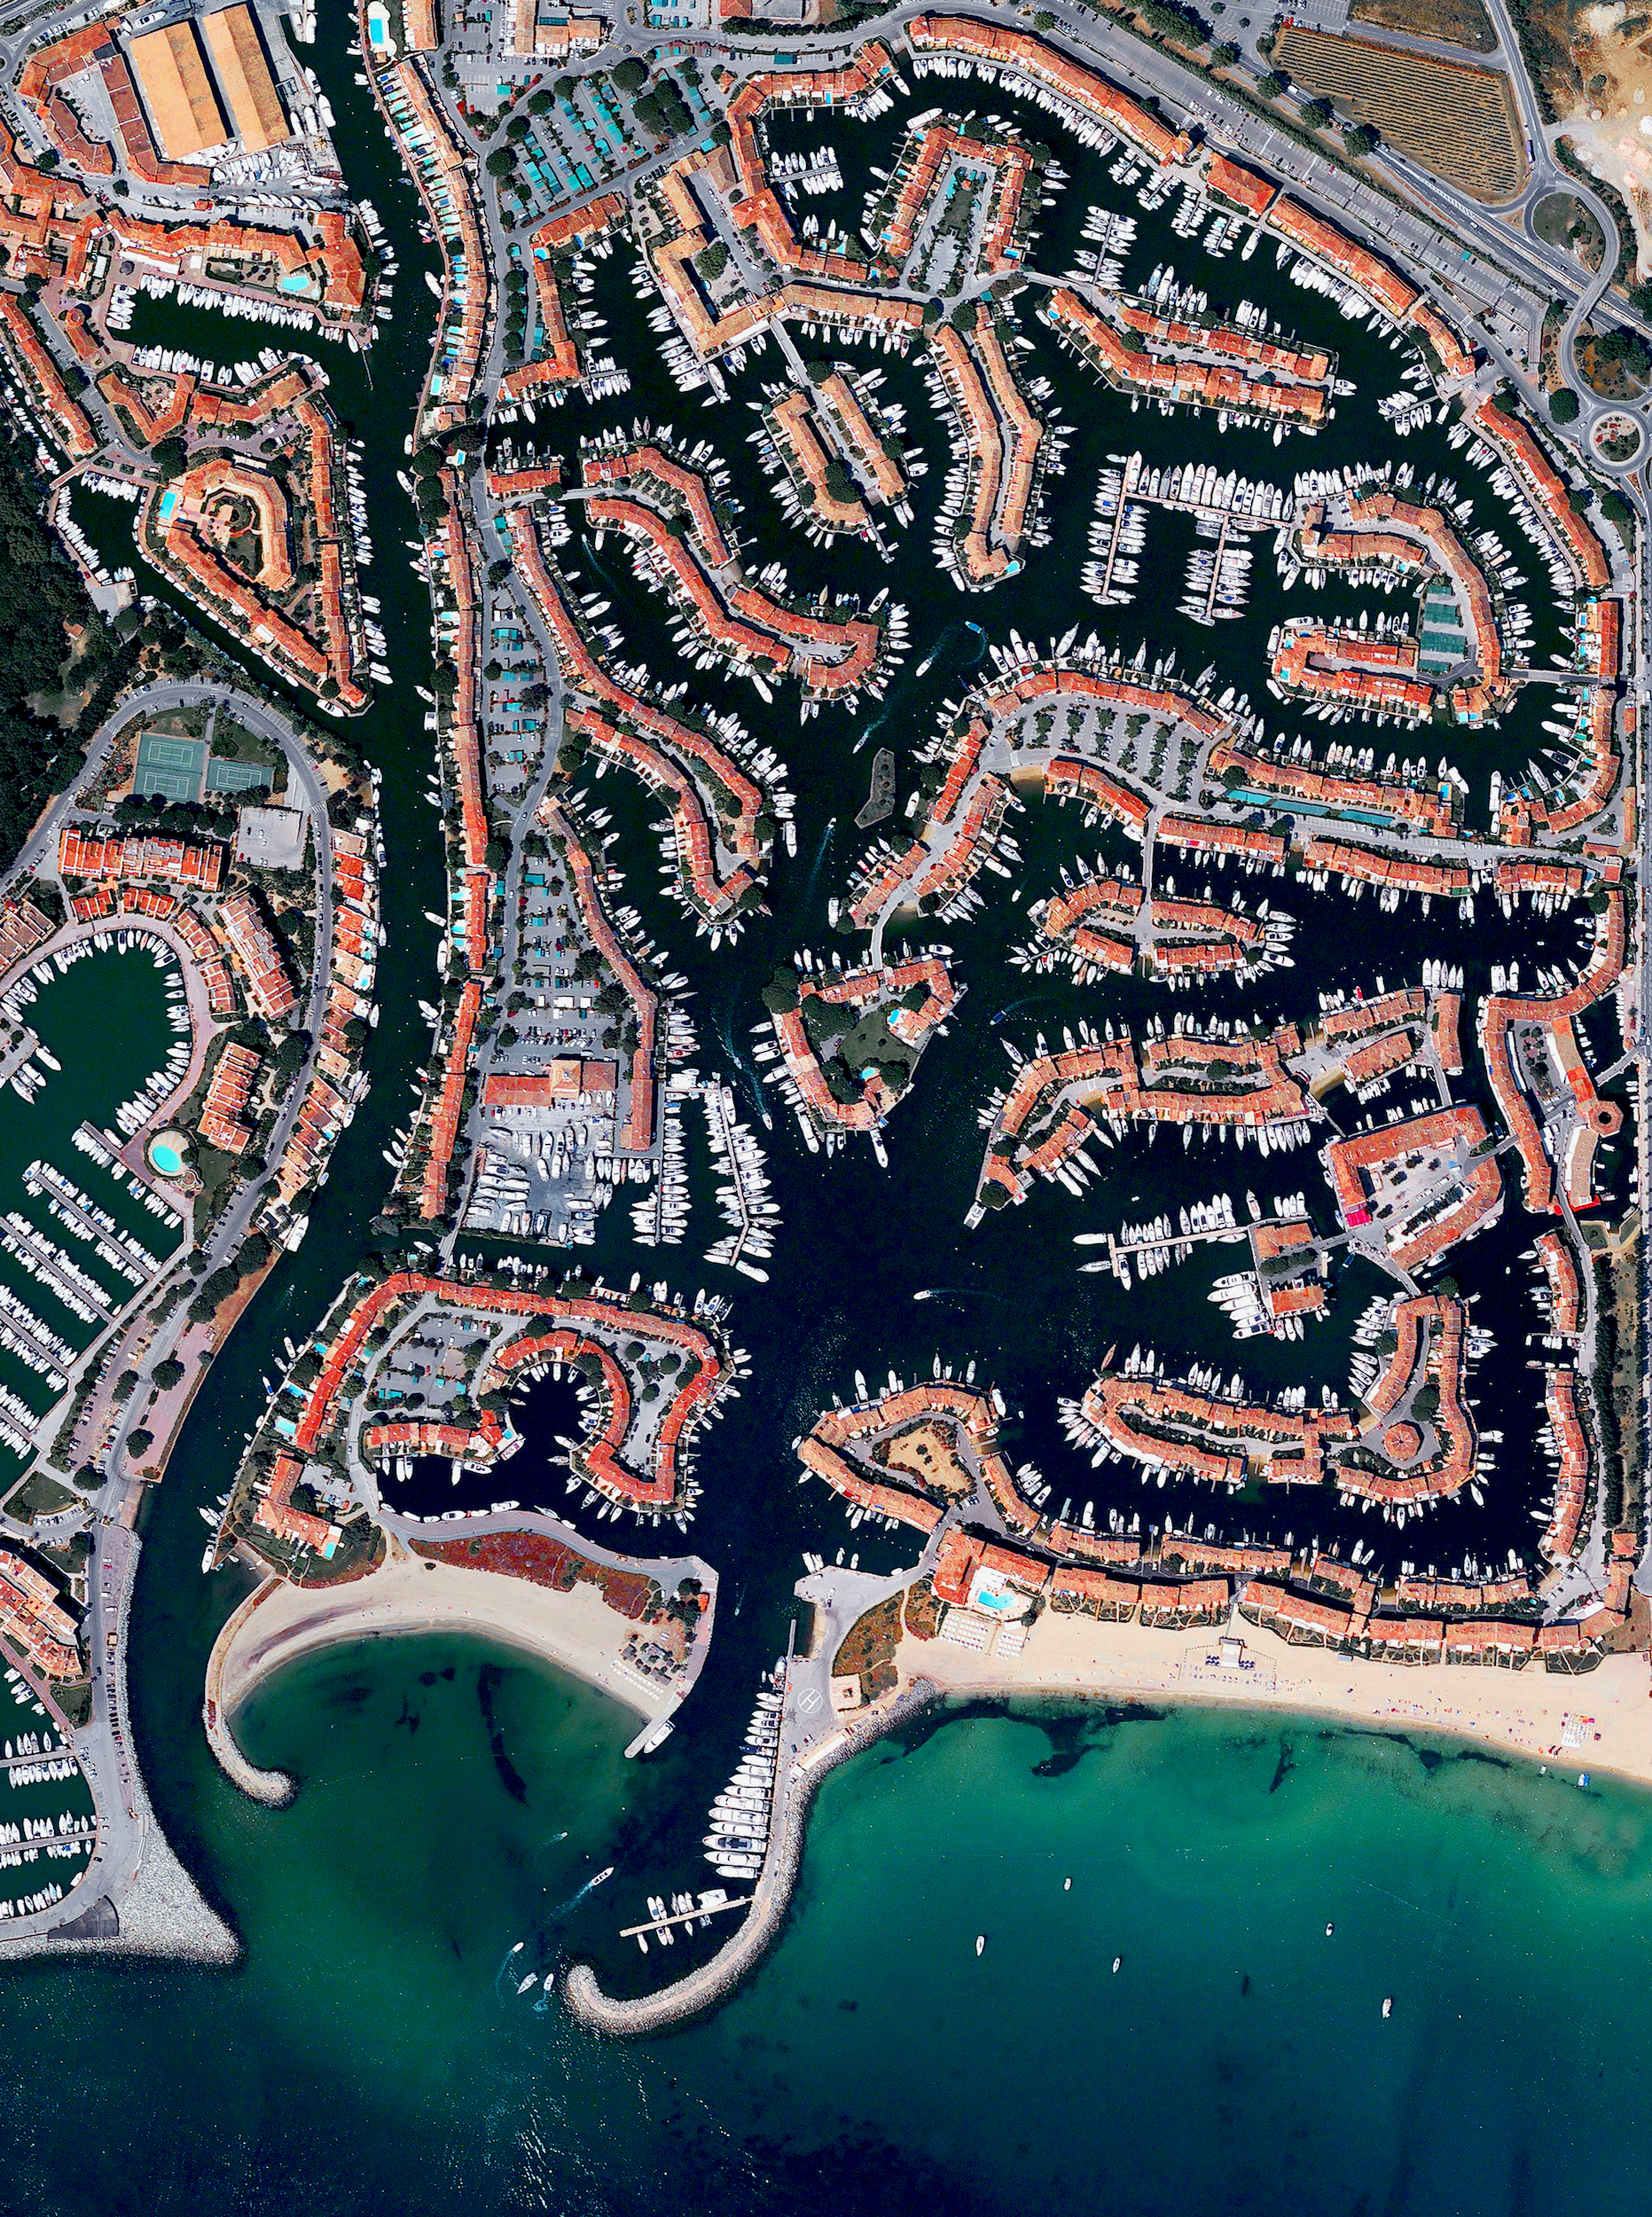 """6/19/2017  Port Grimaud  43°16′20″N 6°34′49″E    Port Grimaud is a seaside town located on the French Riviera by the Gulf of Saint Tropez. The development consists of French """"Fisherman"""" style houses built upon channels in a Venetian manner."""